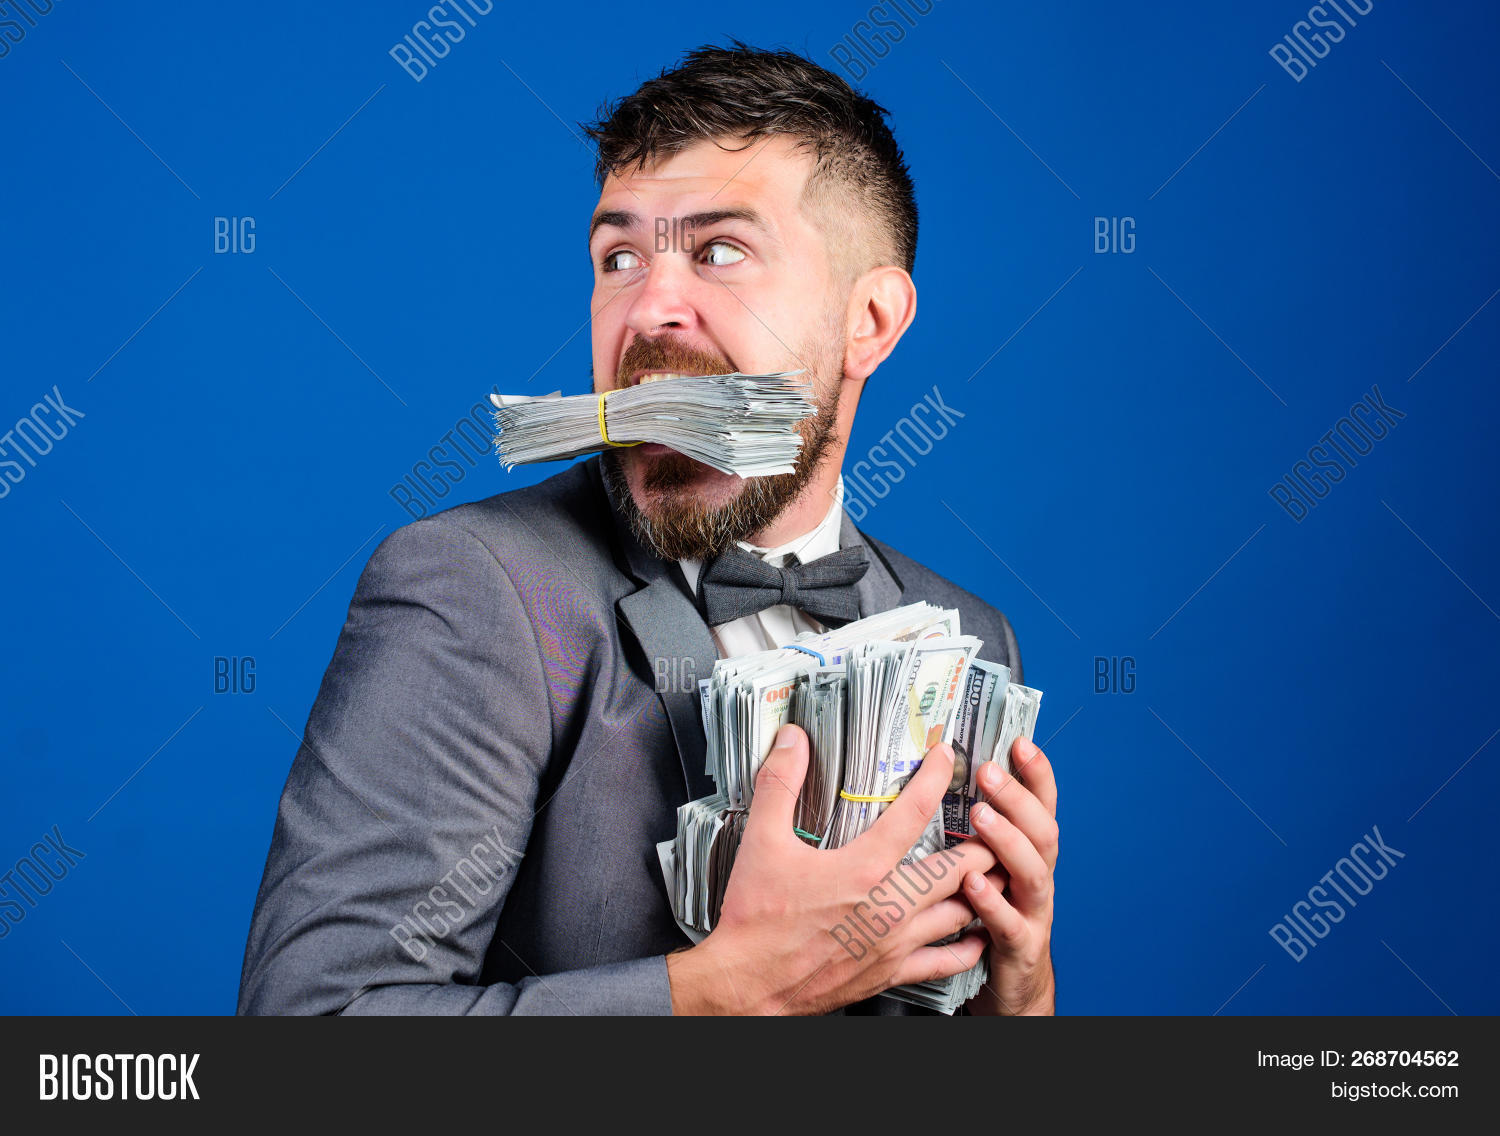 background,bank,banknote,beard,bearded,blue,boss,business,businessman,cash,ceo,concept,credit,currency,director,dollars,earnings,economy,fashion,feel,financial,get,hand,hipster,hold,like,loan,lot,man,money,mustache,pile,profit,quickly,rich,richness,salary,savings,scared,steal,surprise,surprised,symbol,thief,transaction,wellbeing